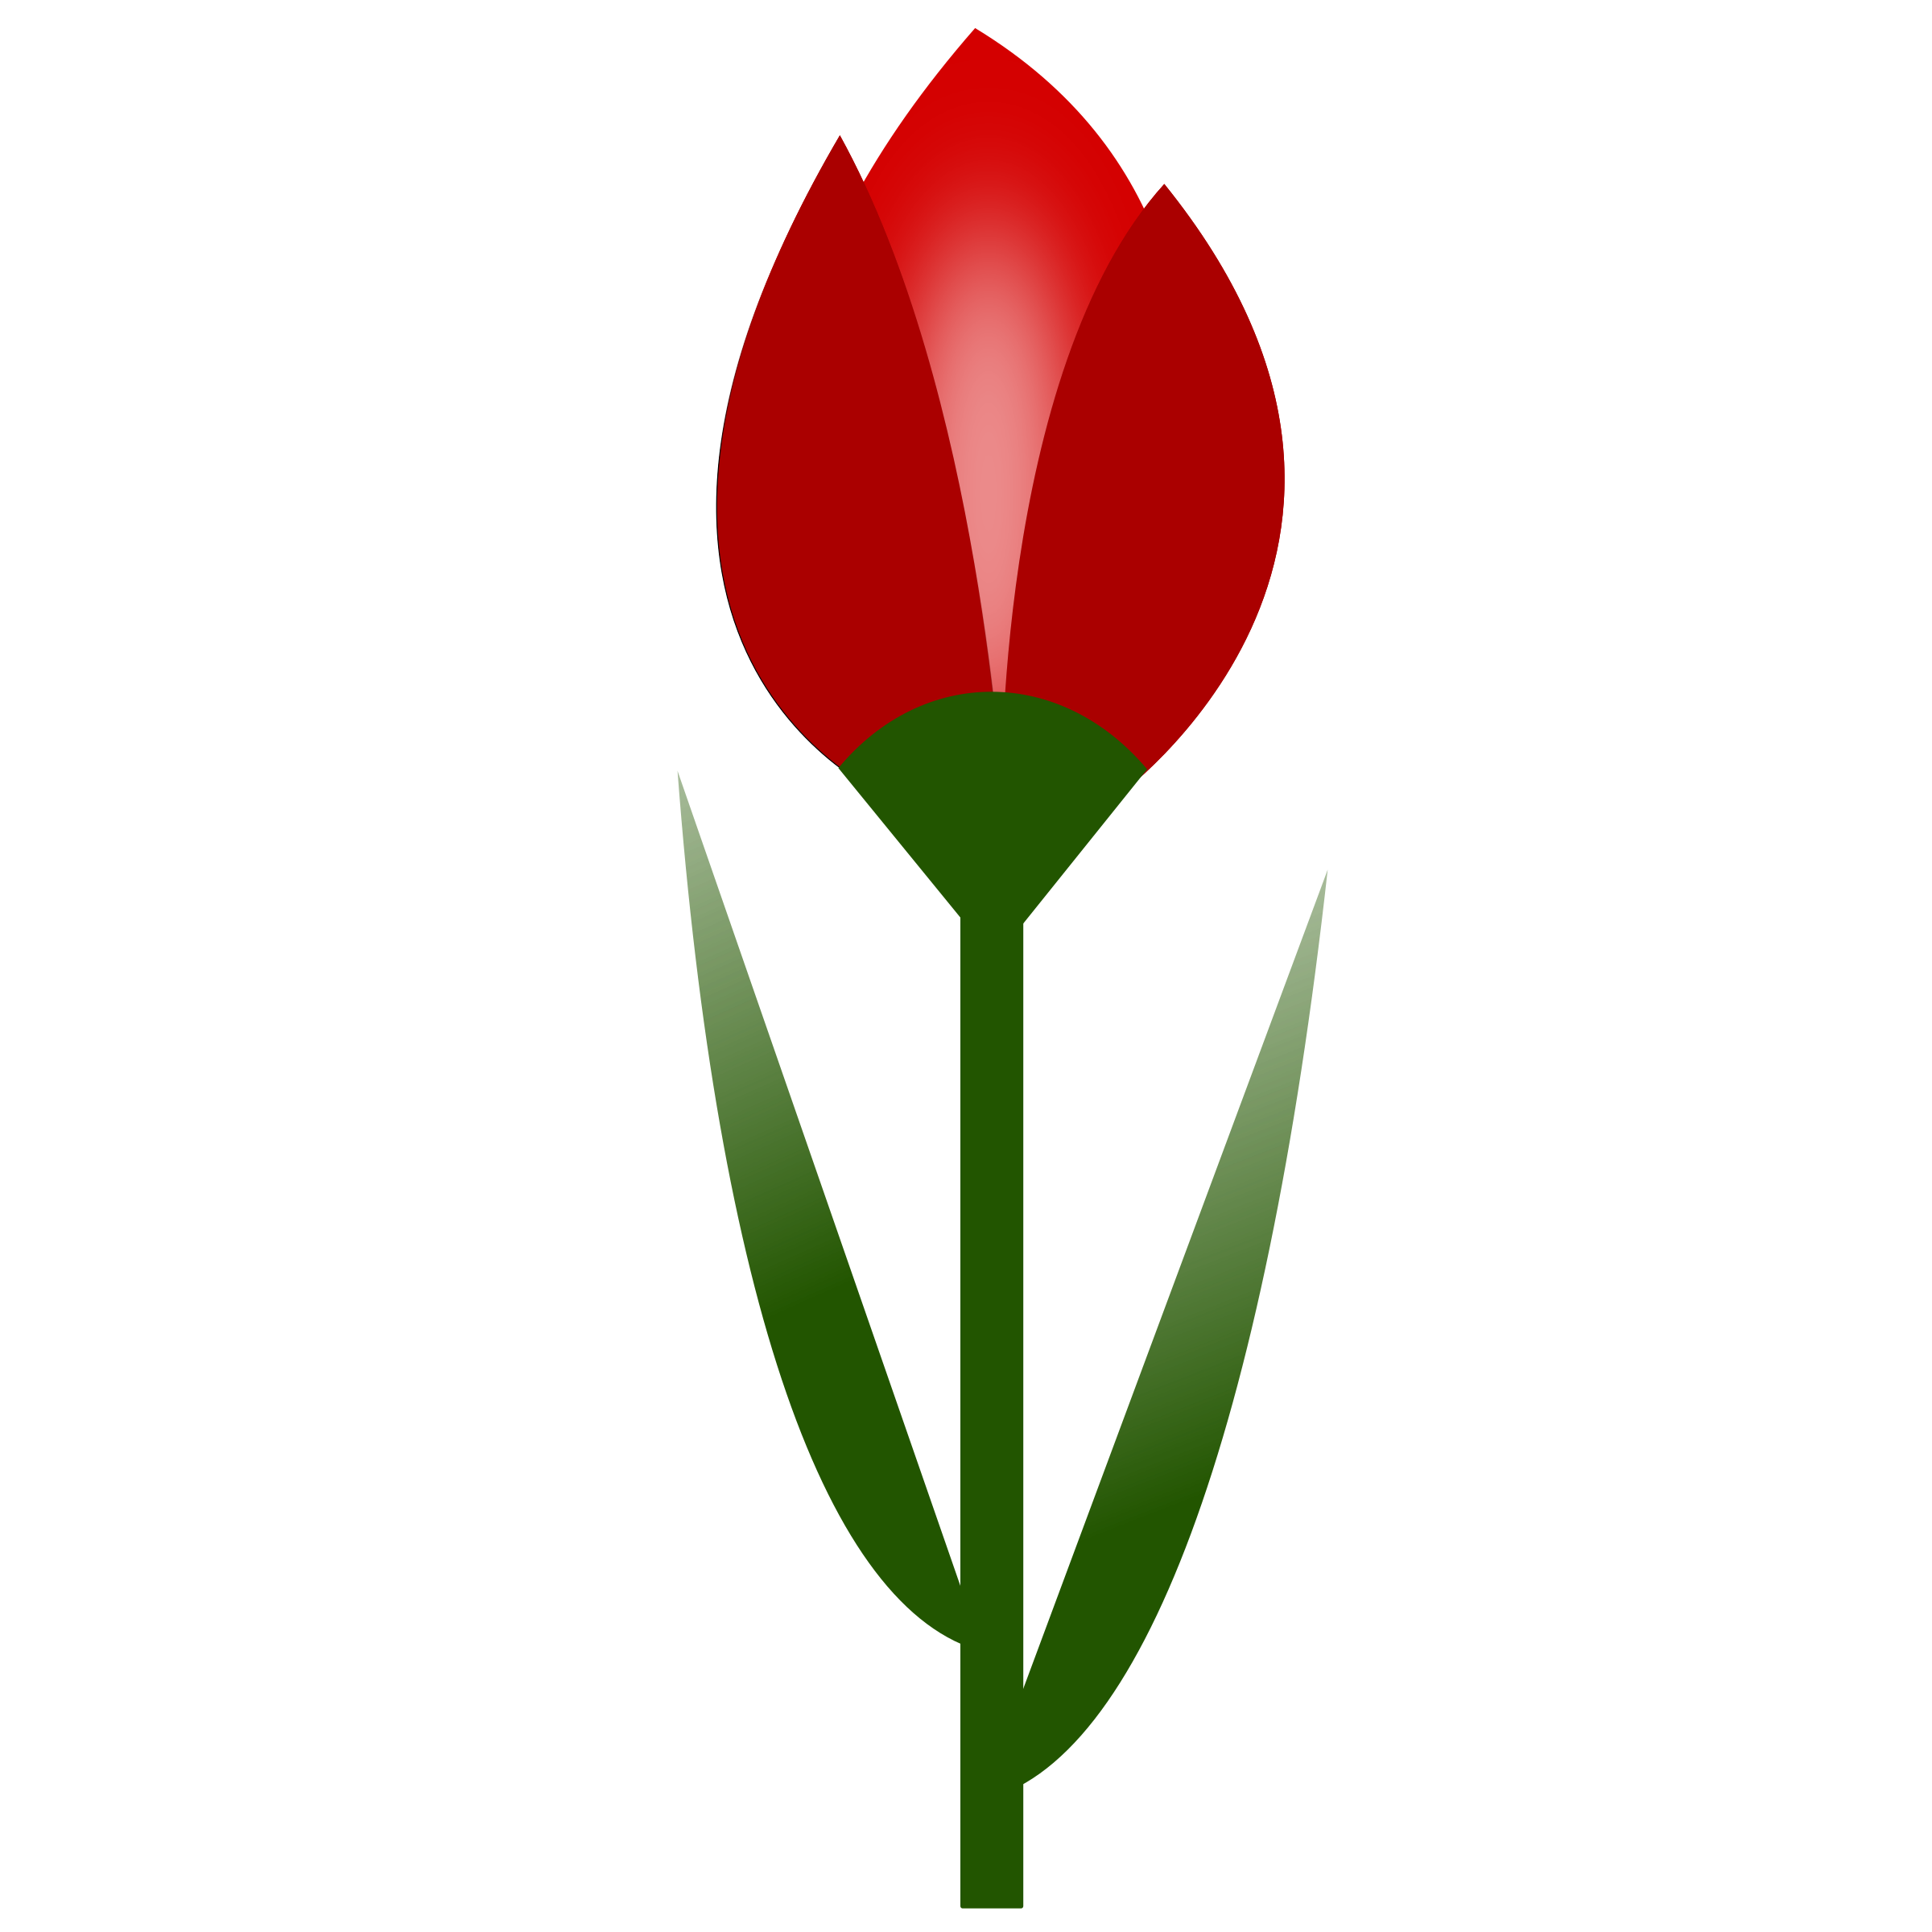 Flower clipart tulip. Simple red color with